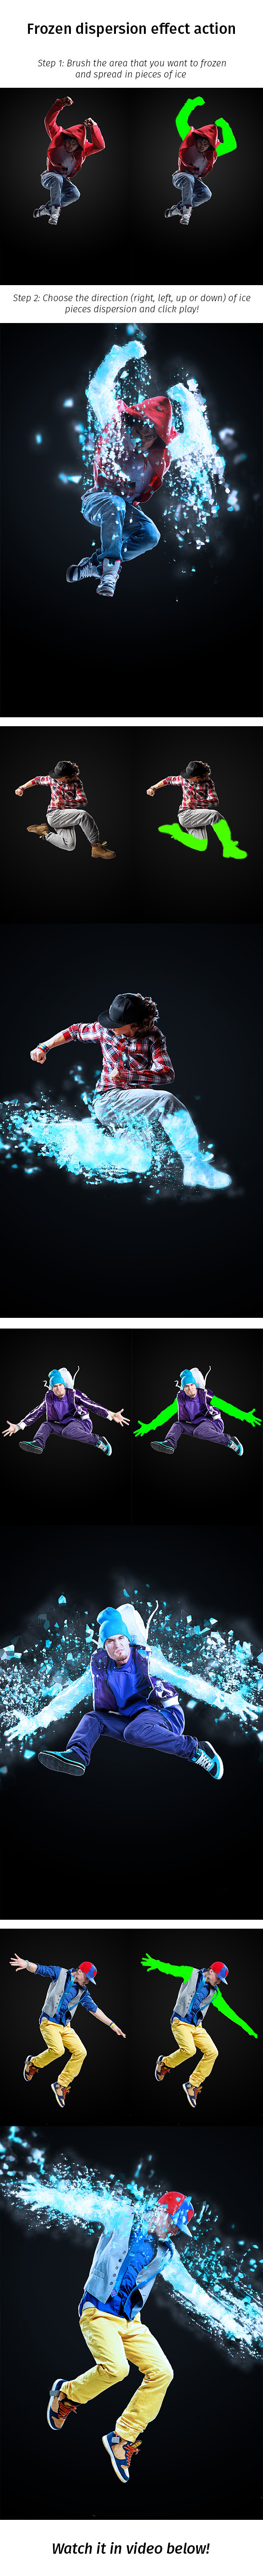 GraphicRiver Frozen Dispersion Effect Action 9032940